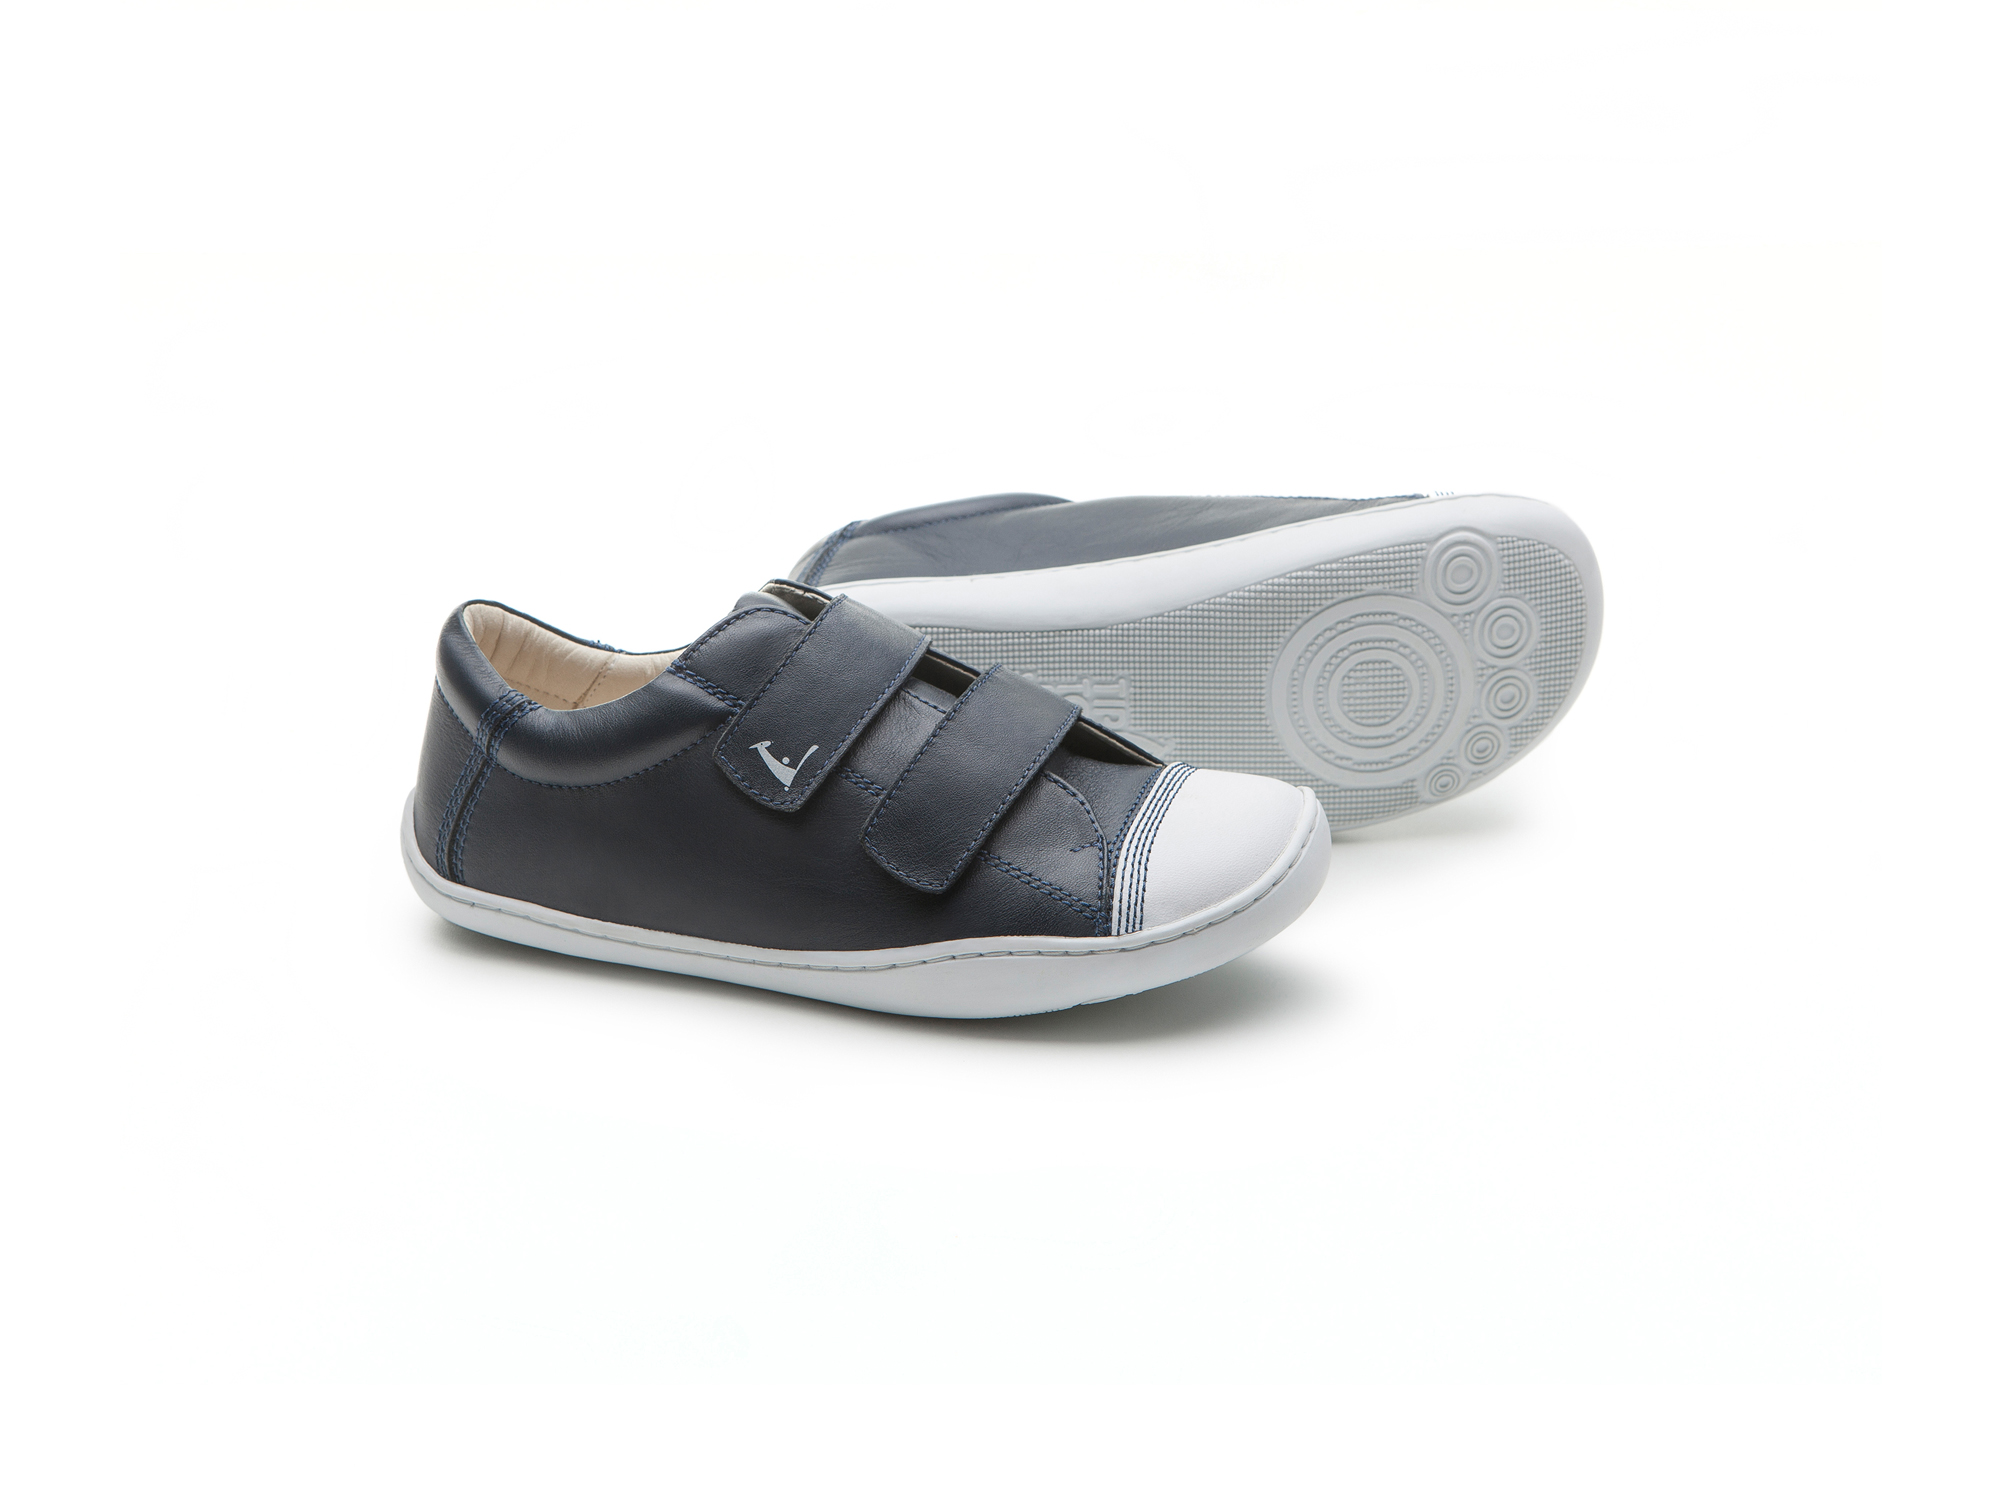 Tênis Munch Navy/ White Junior 4 à 8 anos - 2